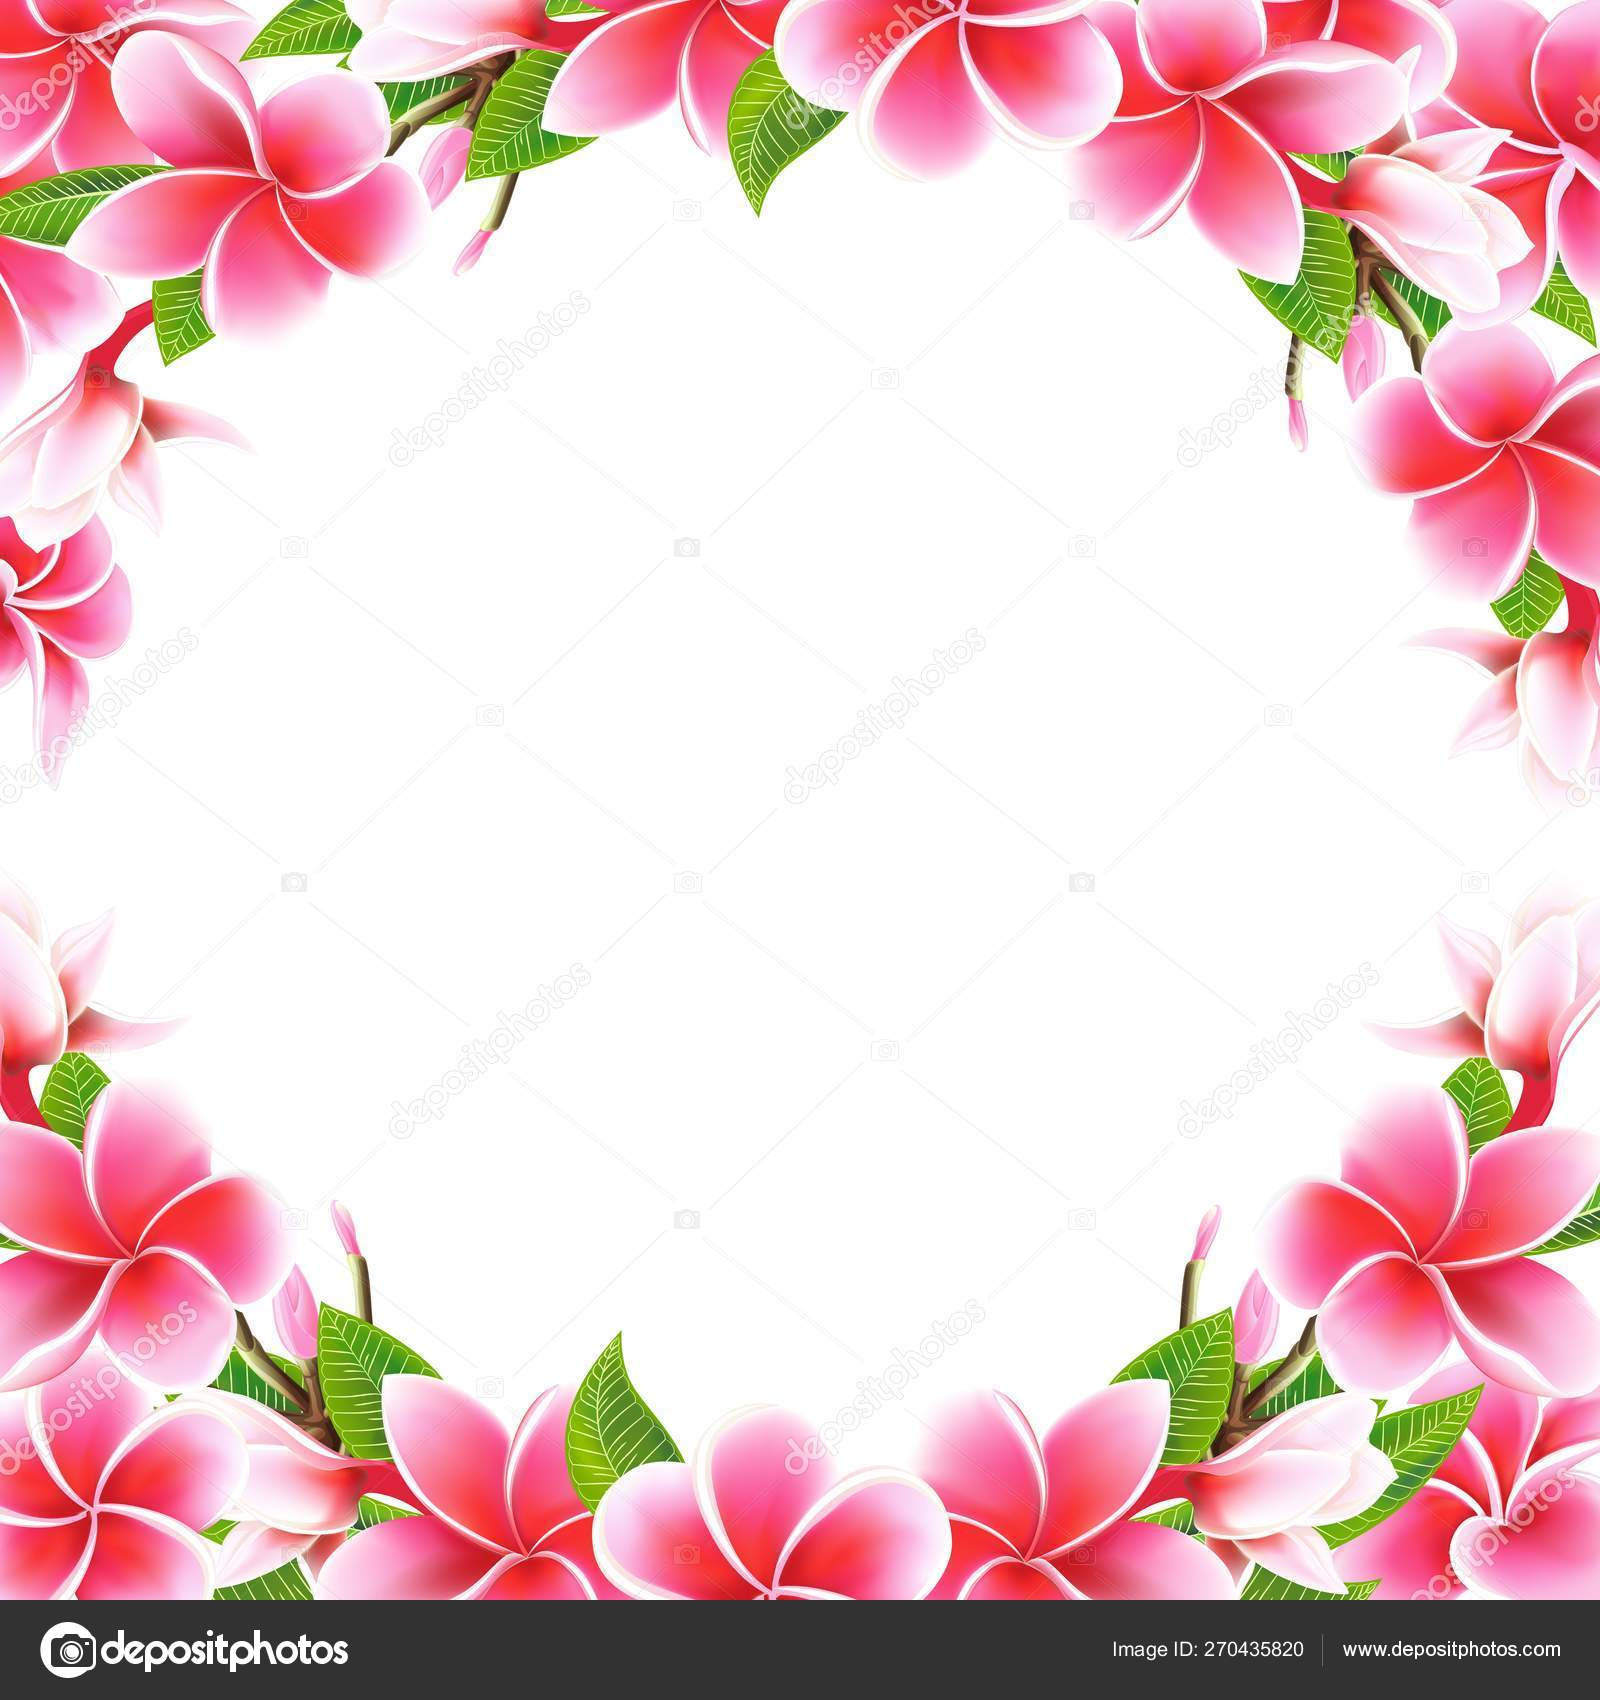 Wedding invitation card floral plumeria frame and lettering ...